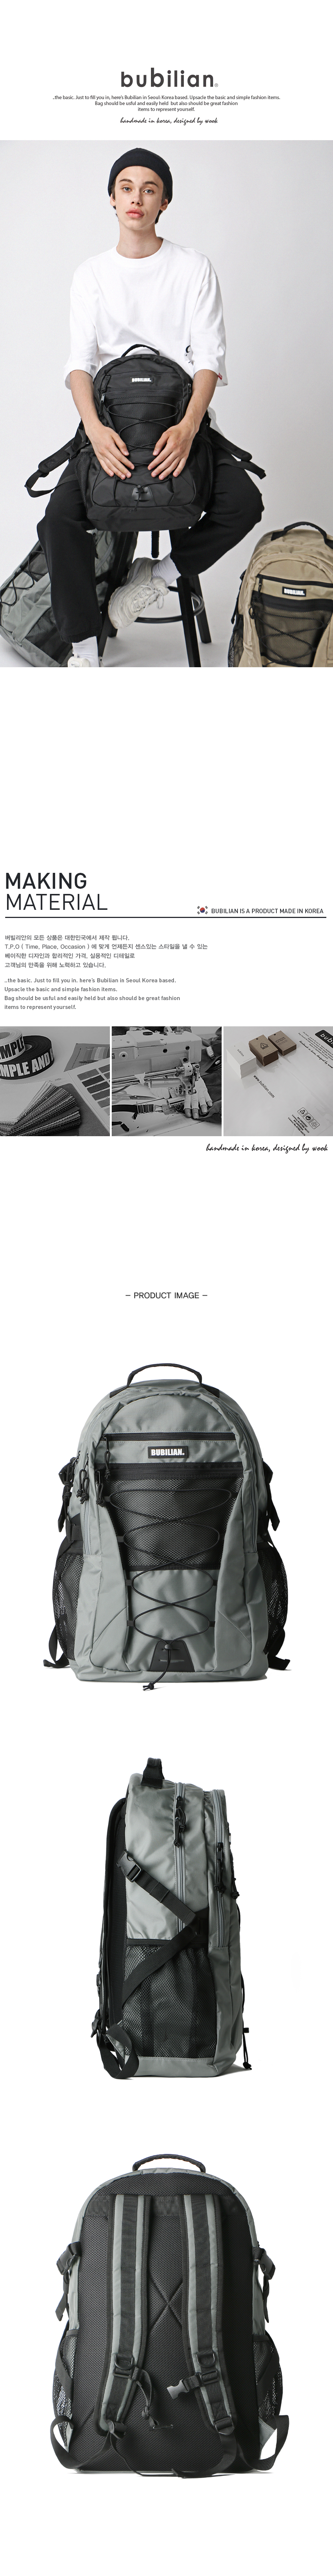 Bubilian Pally Backpack _ [SILVER GRAY]